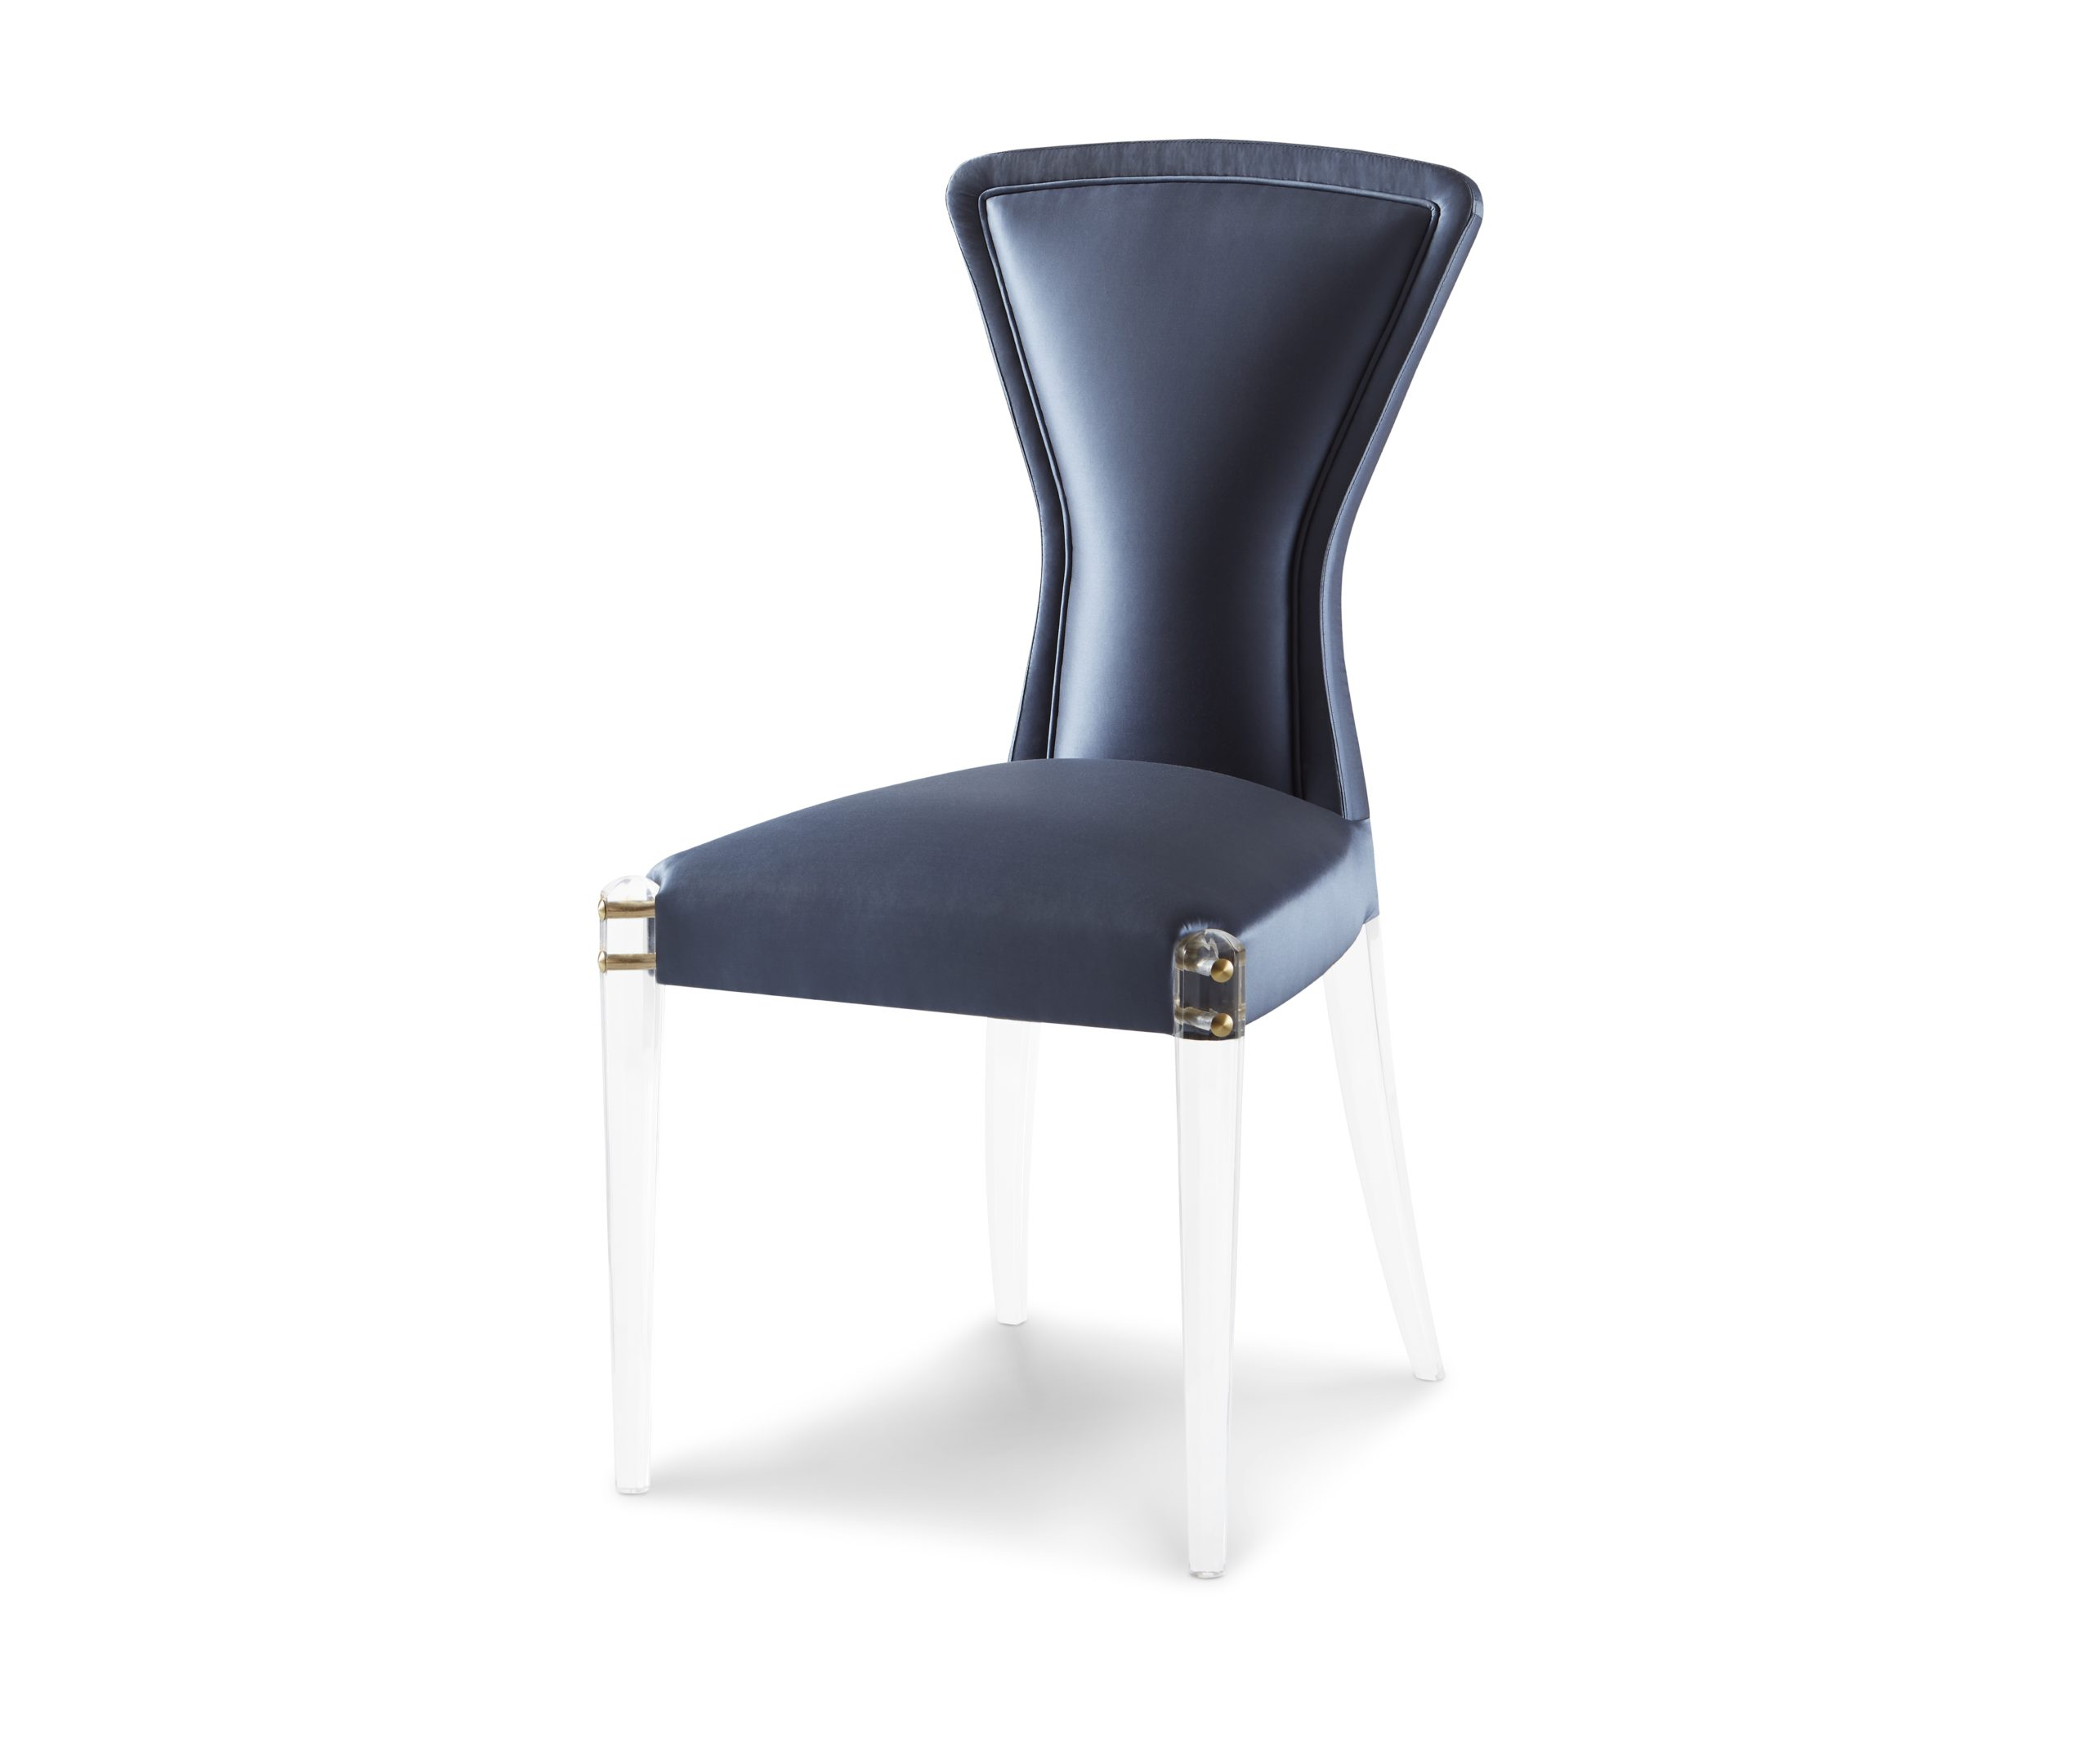 Baker_products_WNWN_ila_chair_BAA3241_FRONT_3QRT-scaled-2